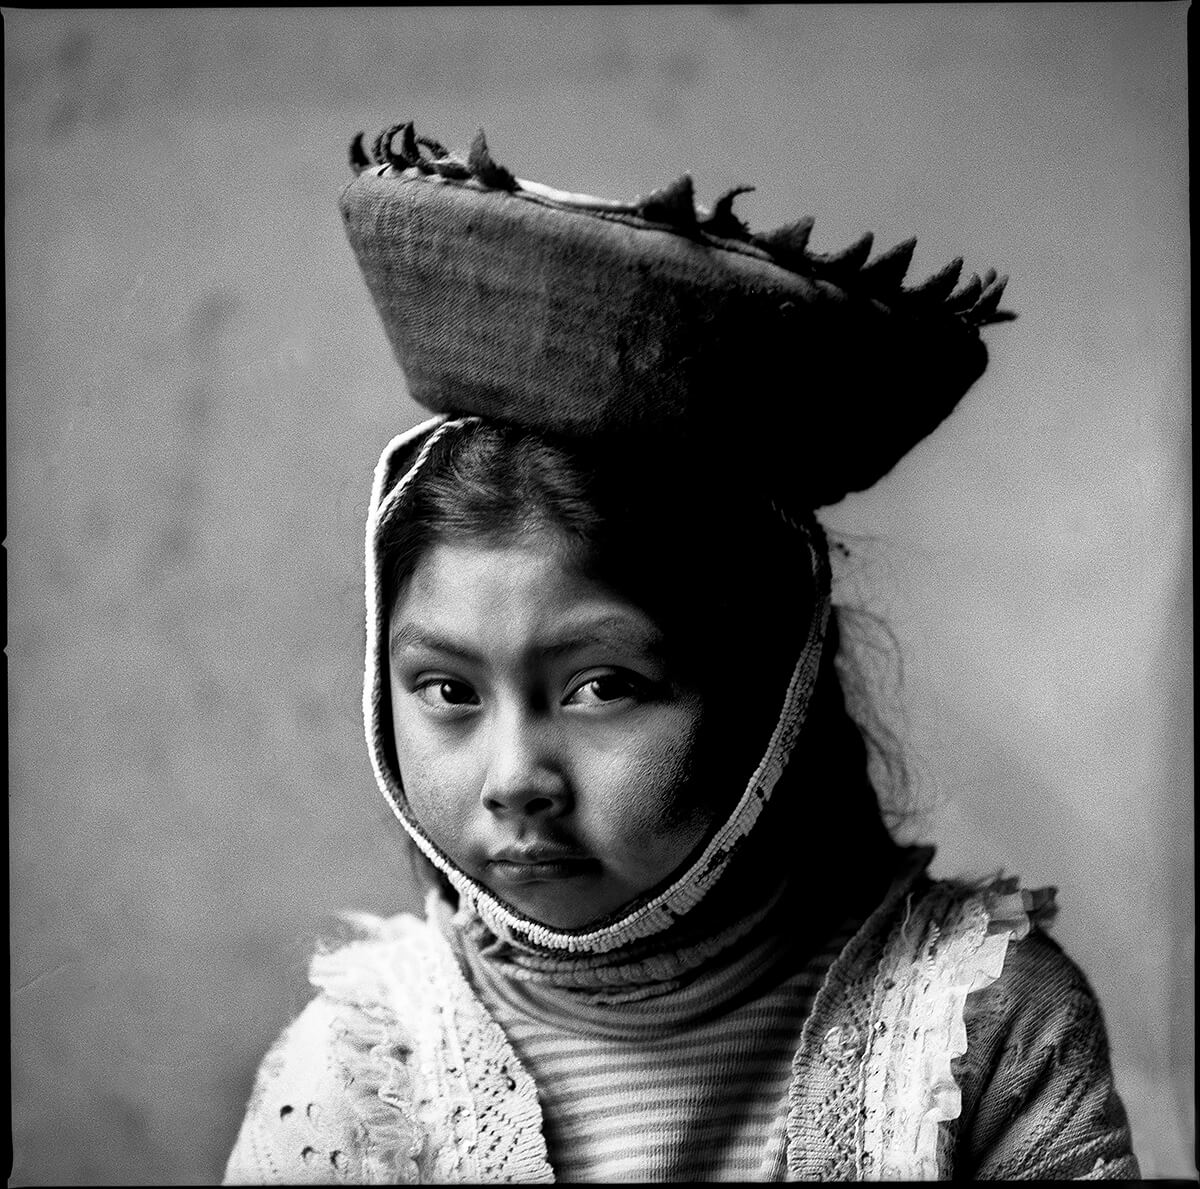 Peru, Indian Girl<p>© Manuello Paganelli</p>